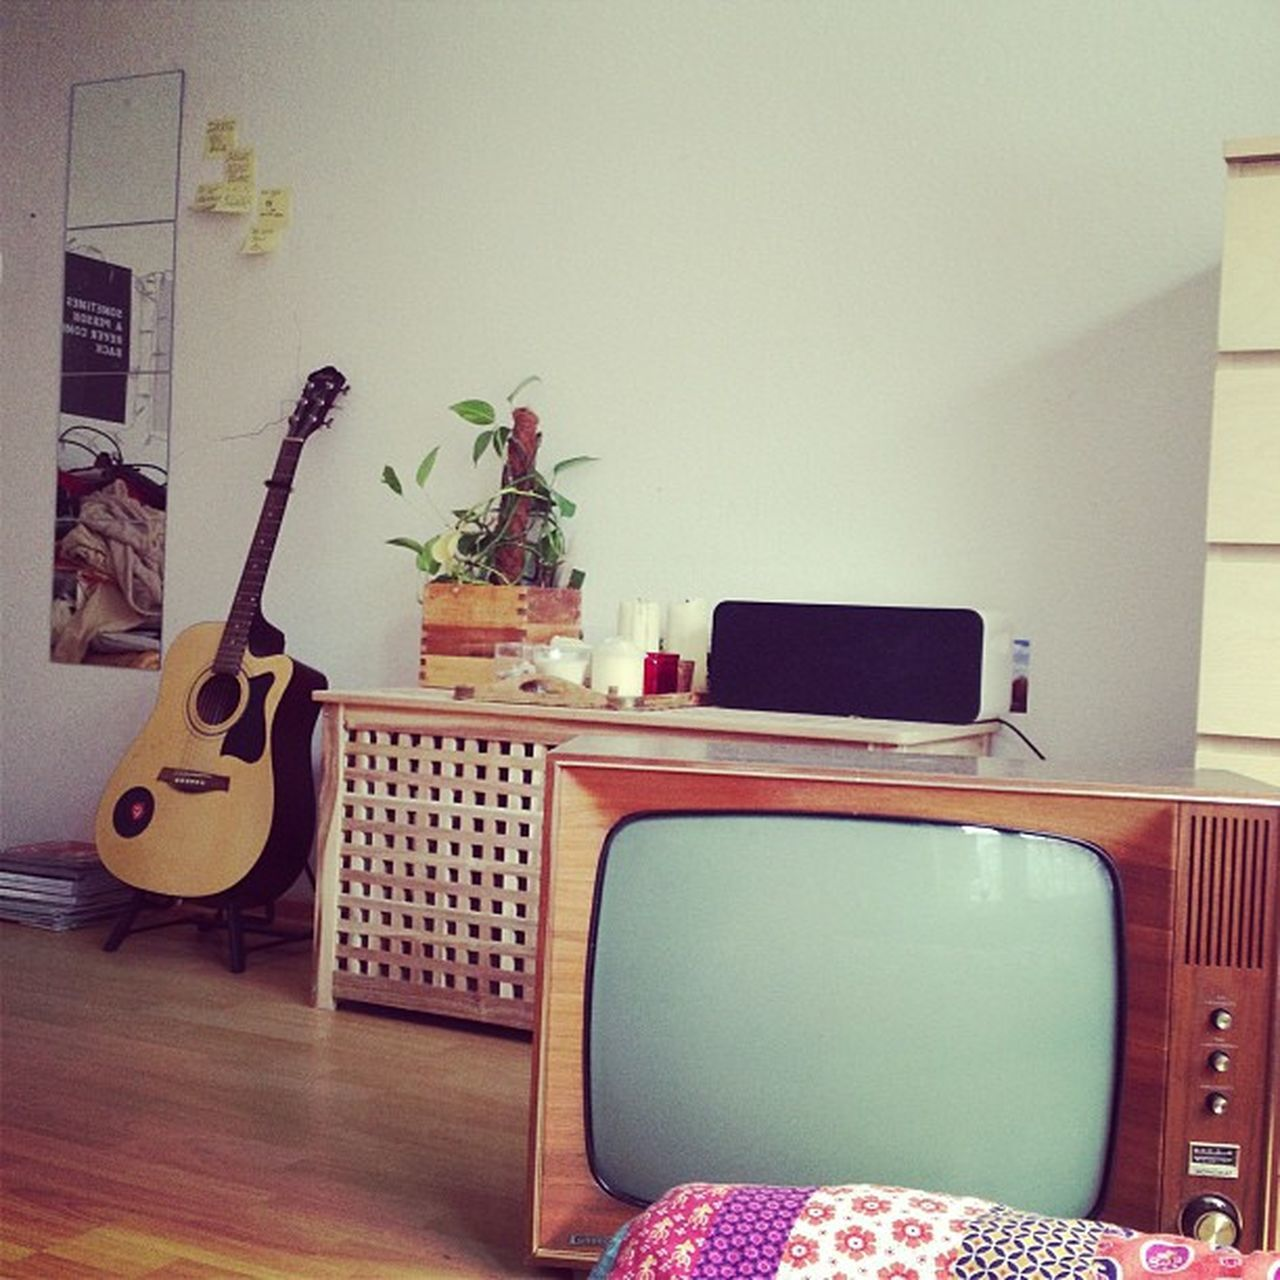 indoors, home interior, music, guitar, musical instrument, no people, living room, day